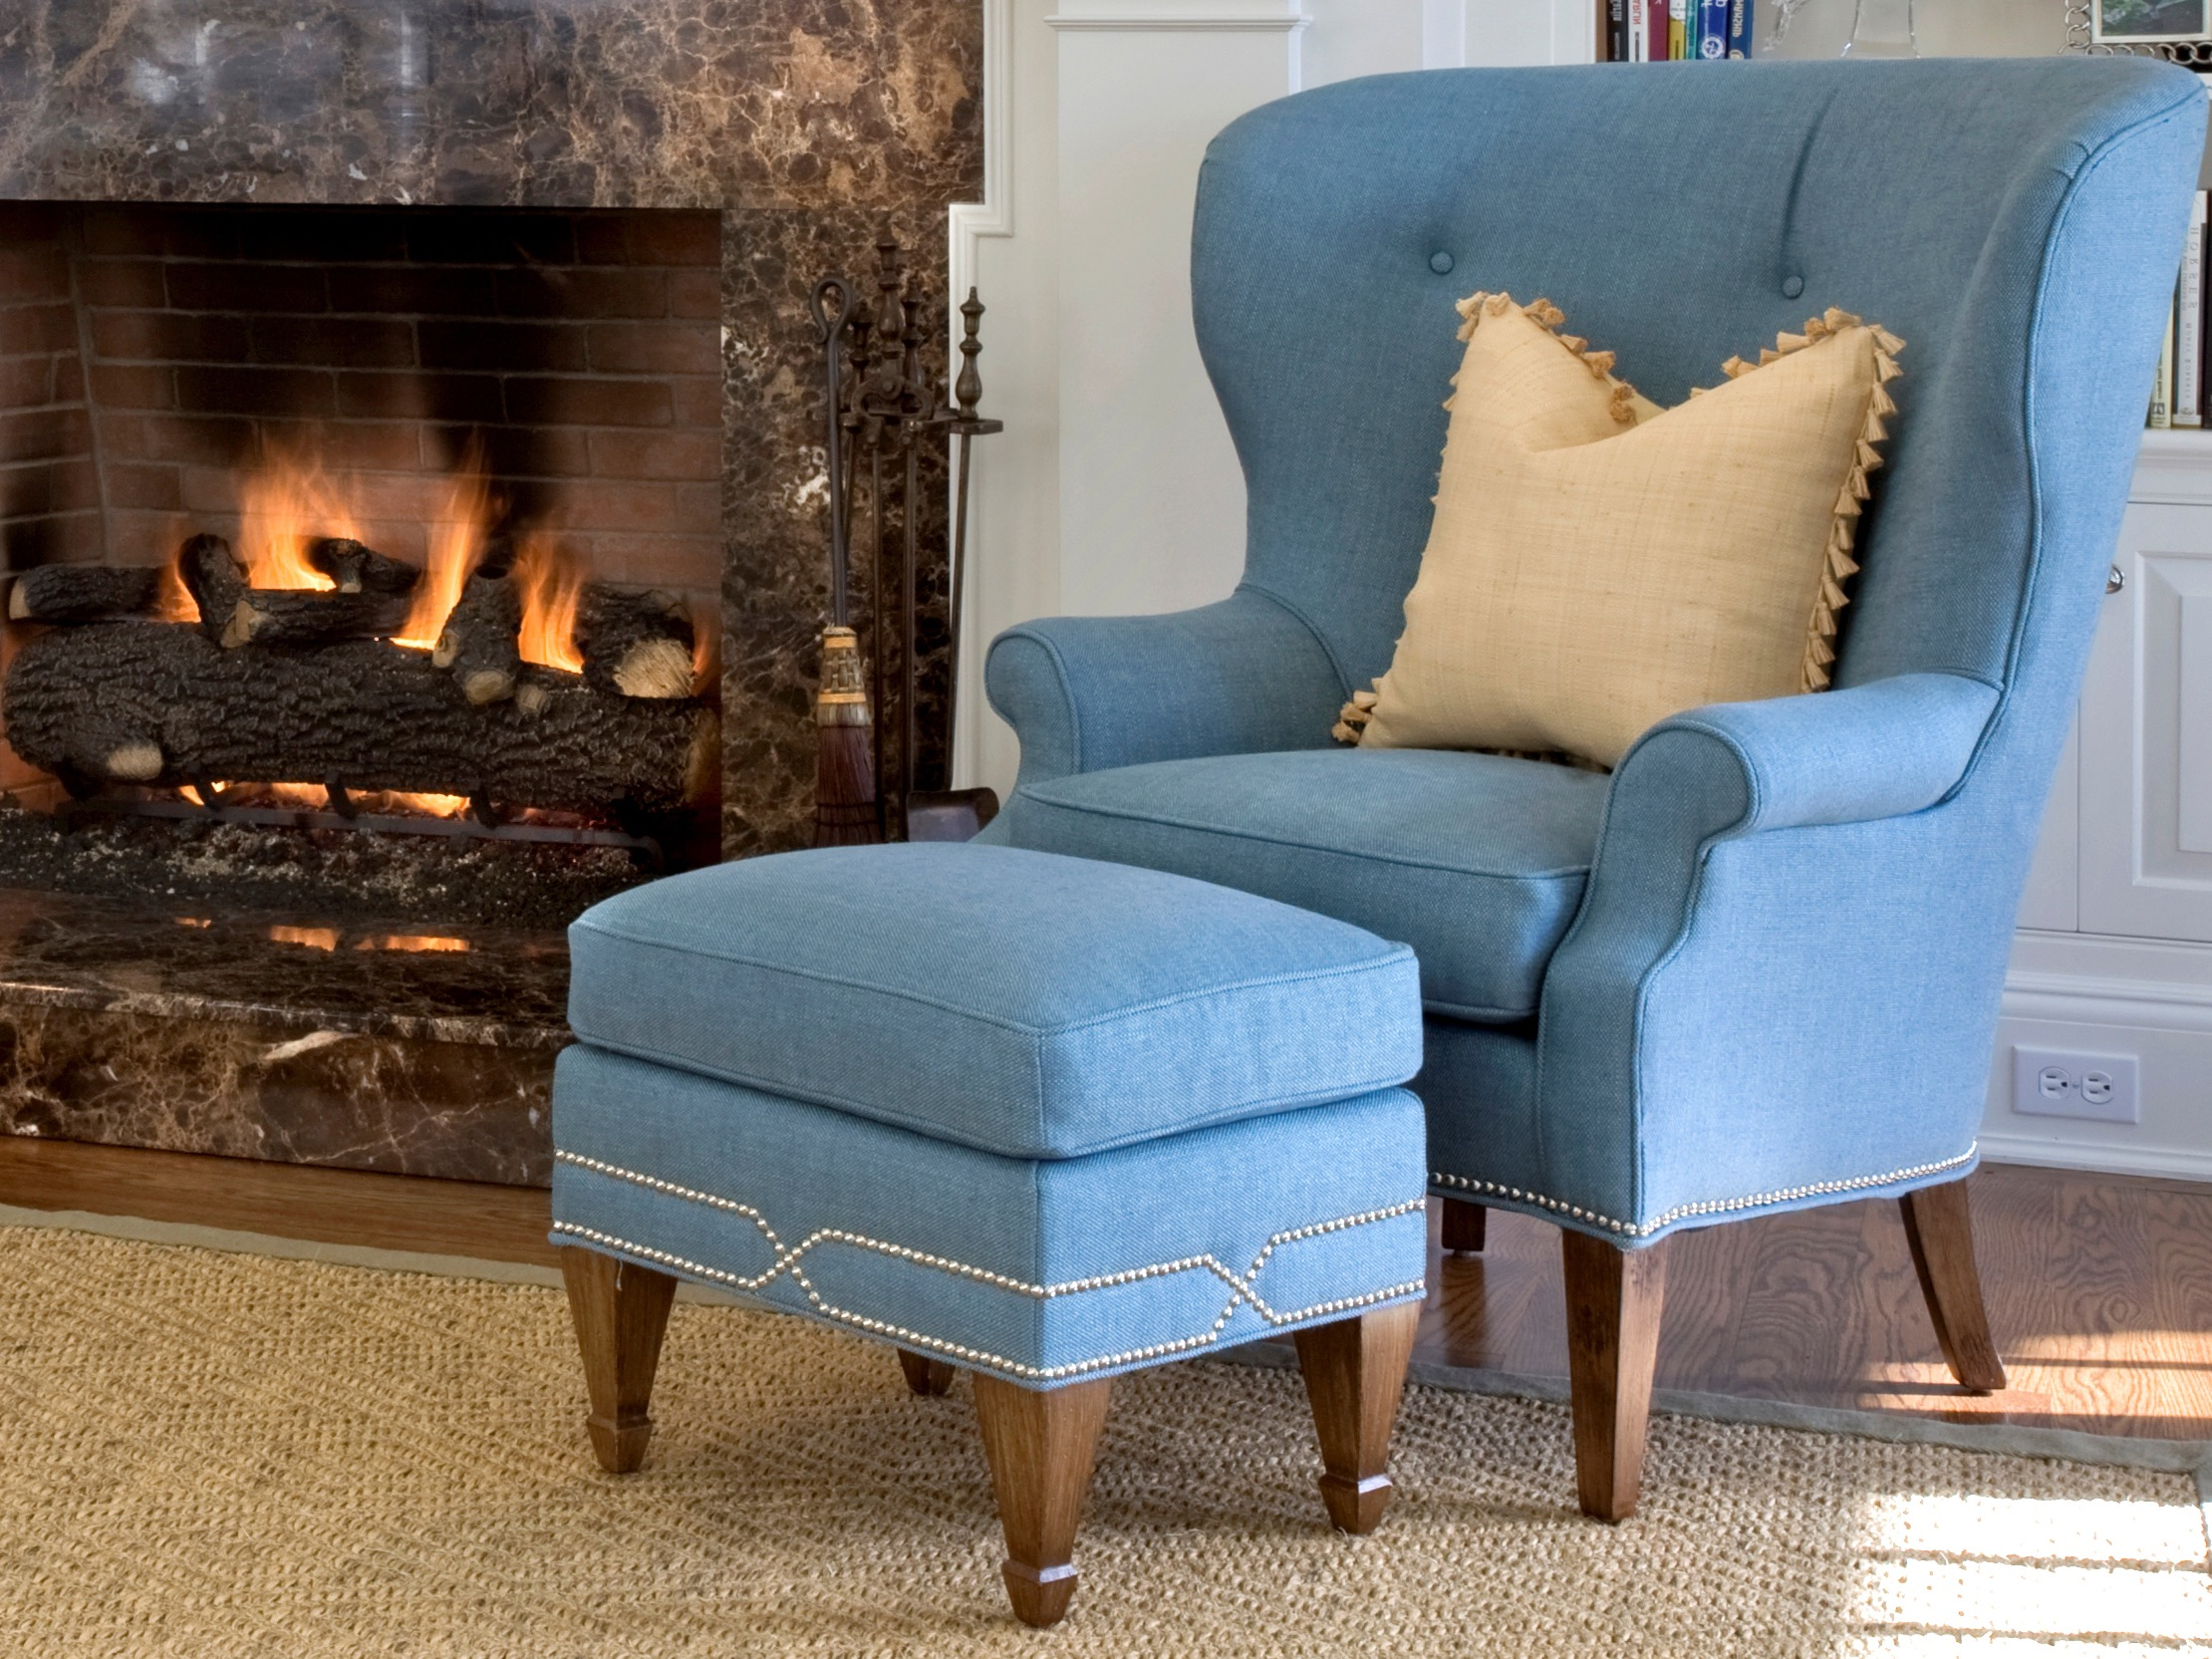 Cozy Queen Anne Chair For Living Room (View 10 of 11)